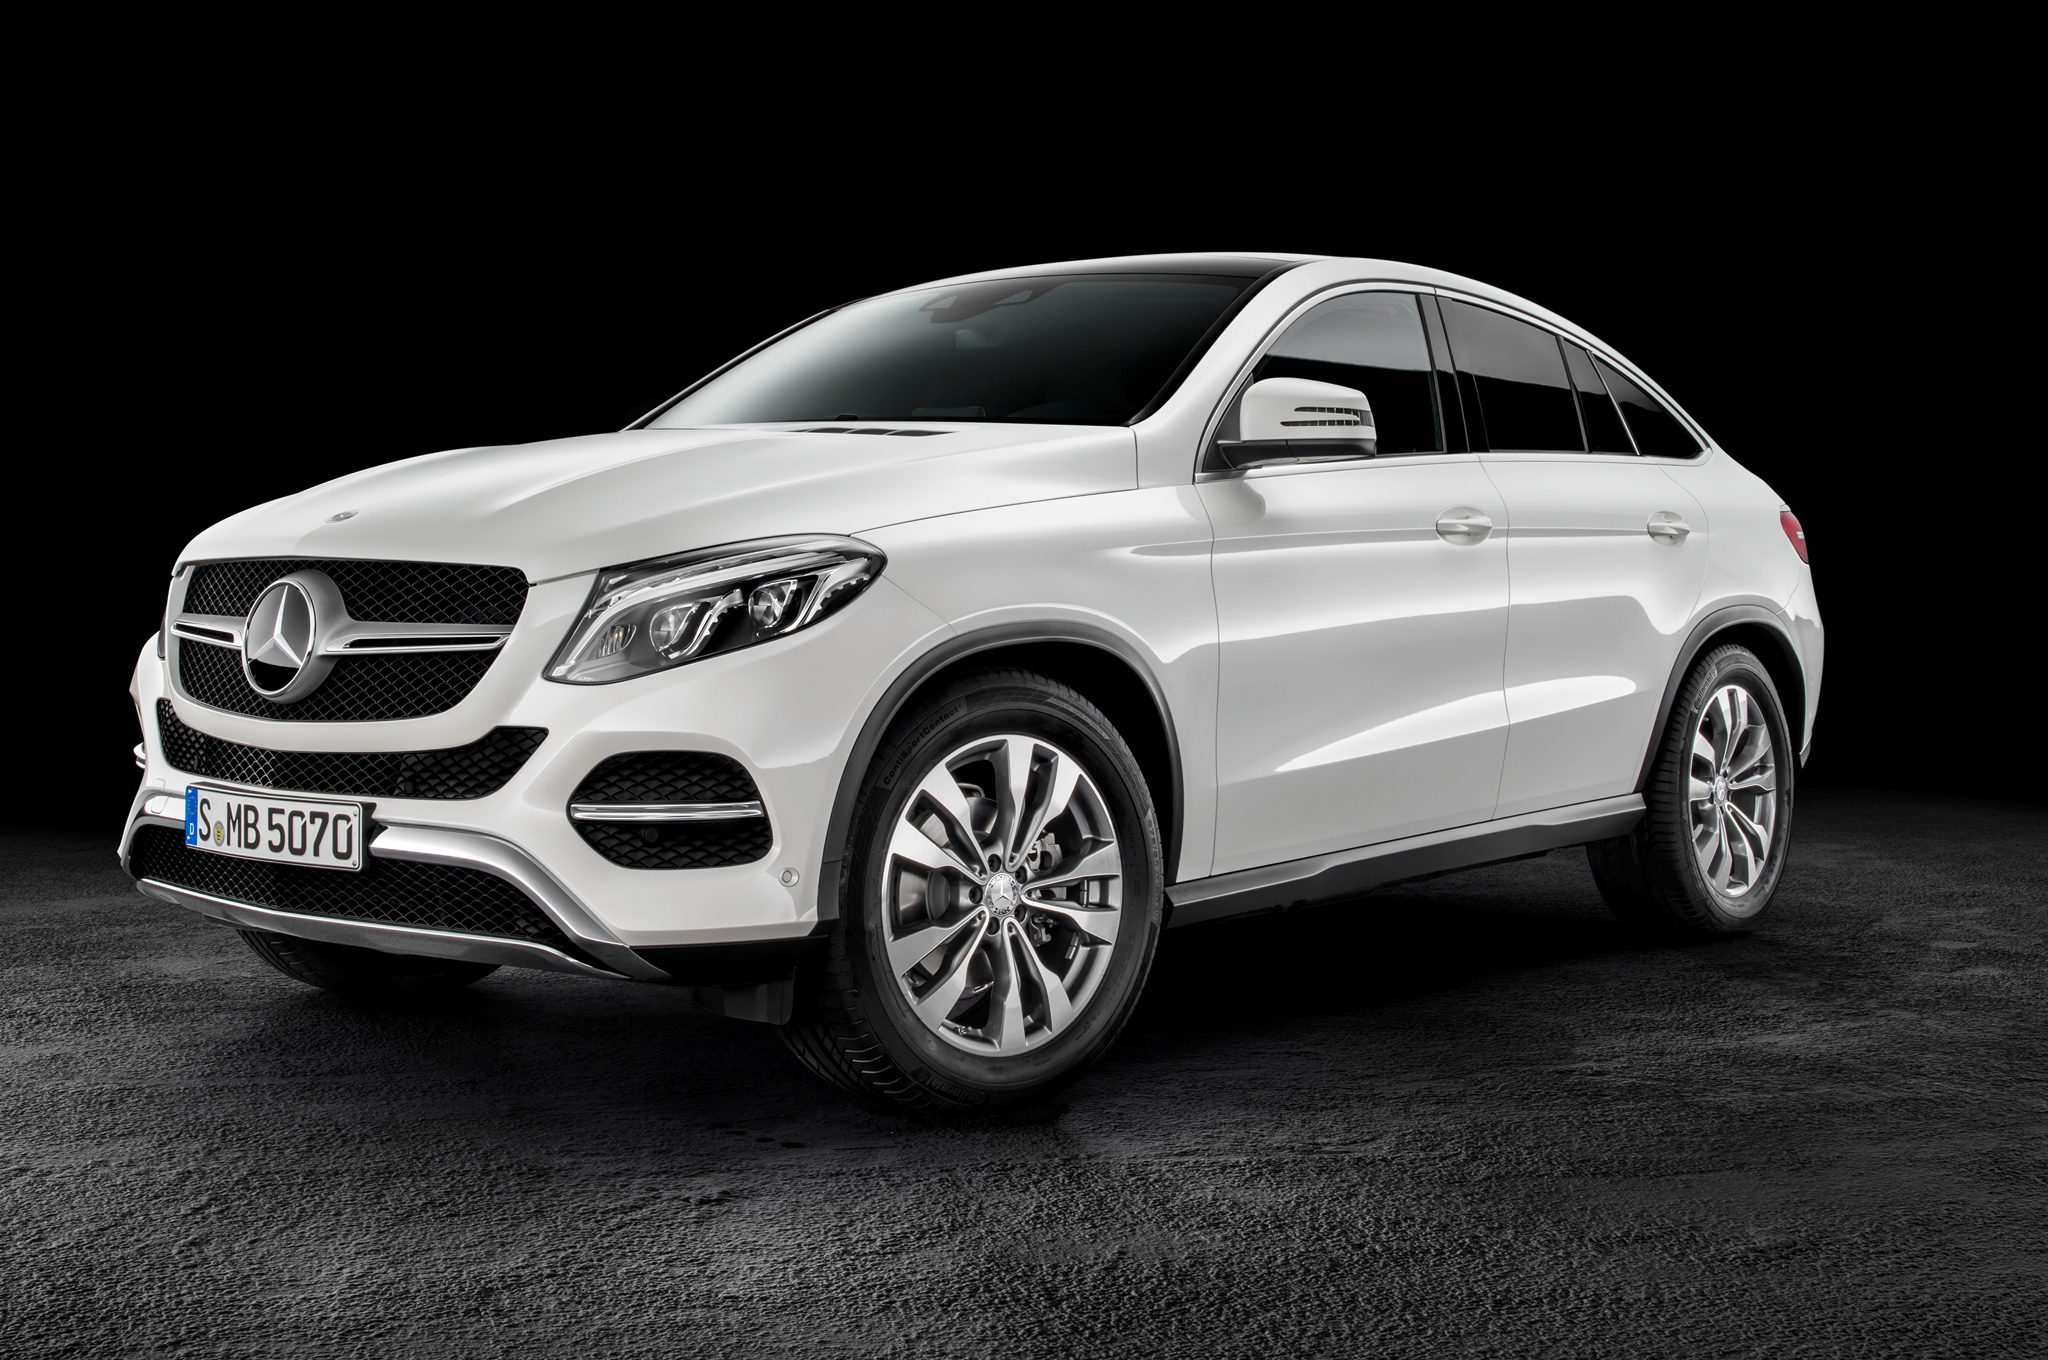 2016 Mercedes-Benz GLE 400 Coupe Makes 333 HP